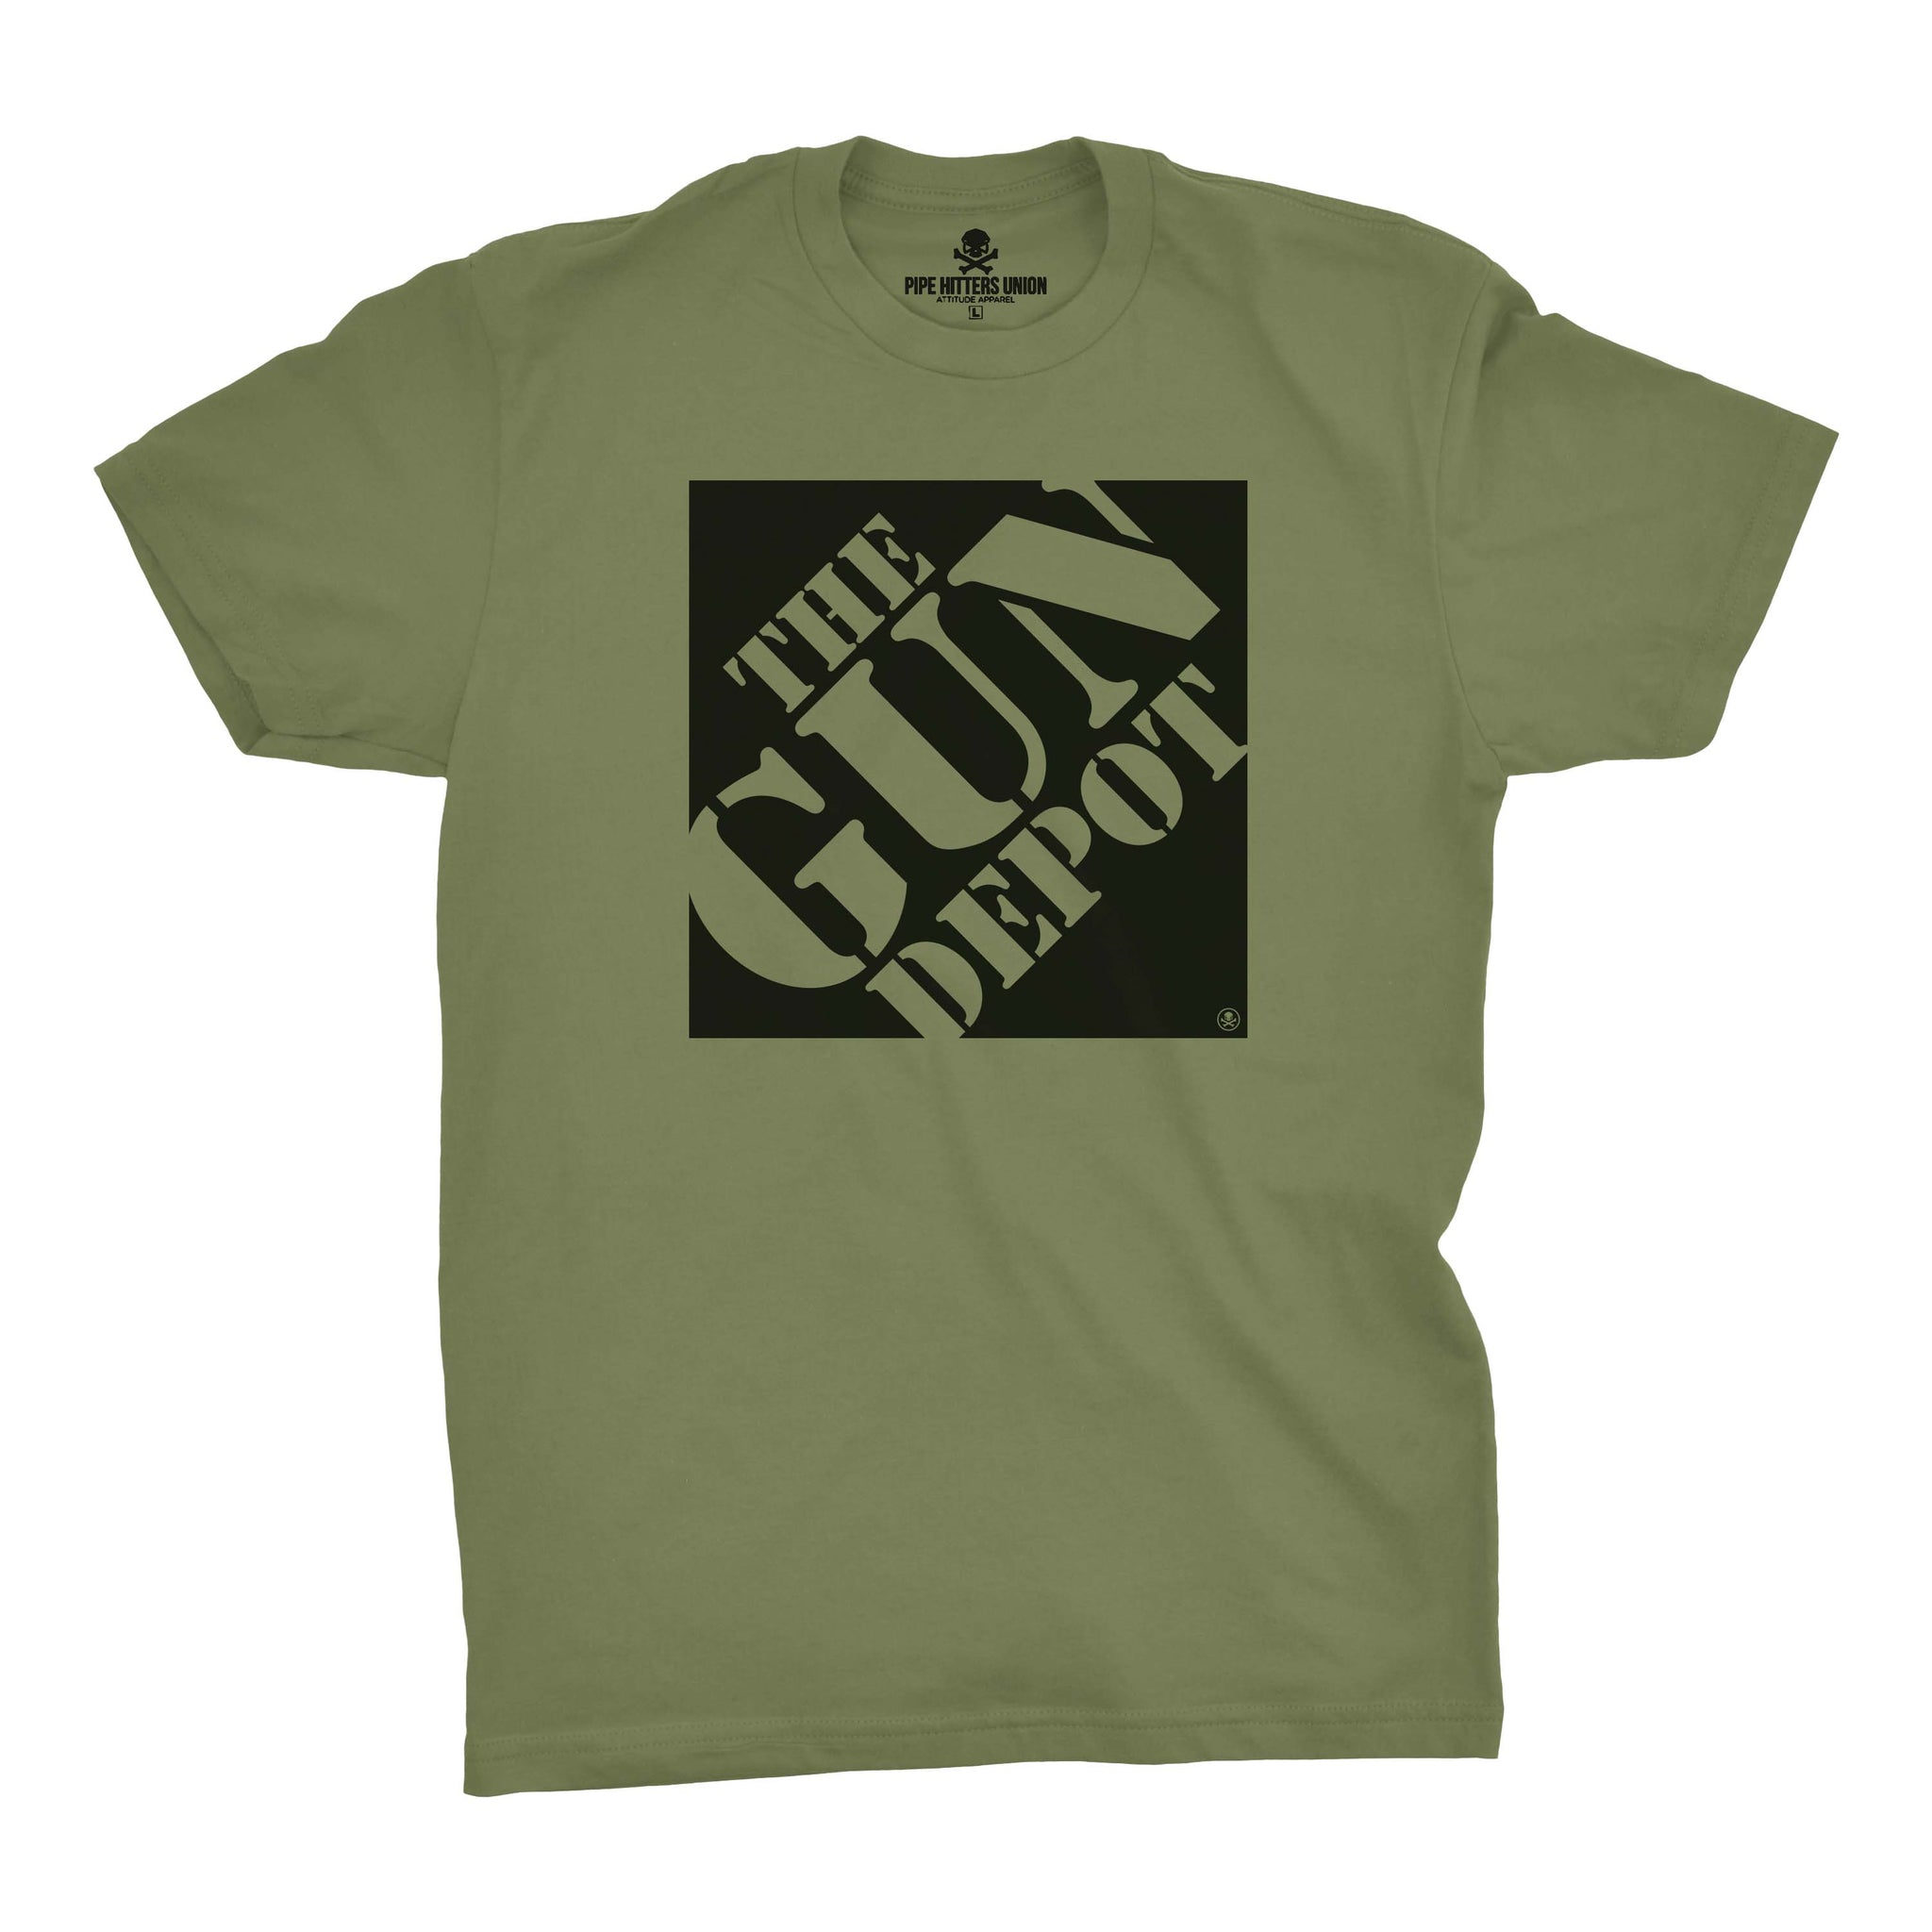 The Gun Depot - Military Green - T-Shirts - Pipe Hitters Union